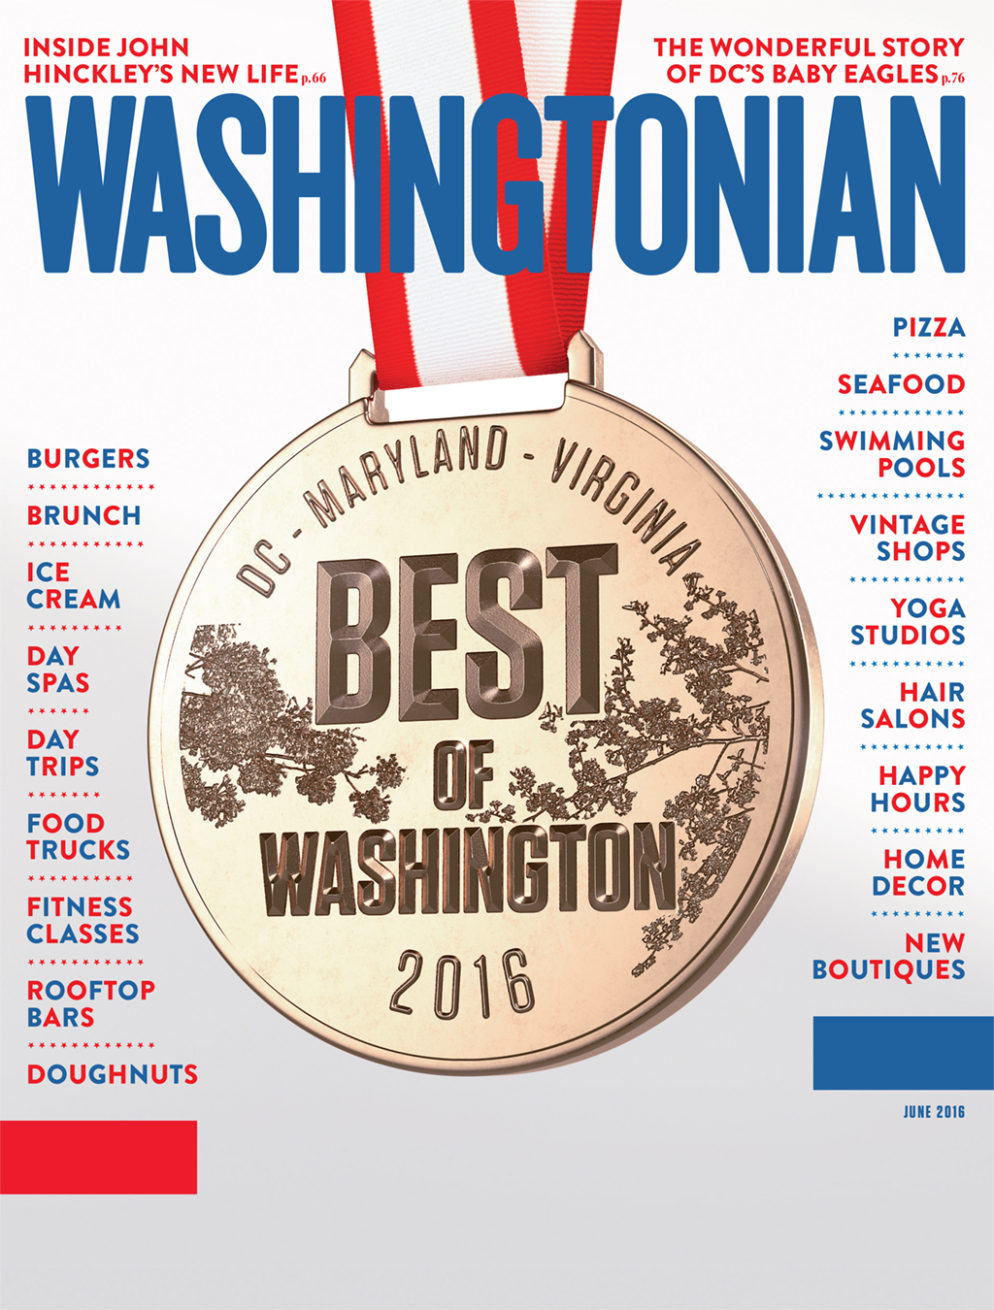 washingtonian.jpg